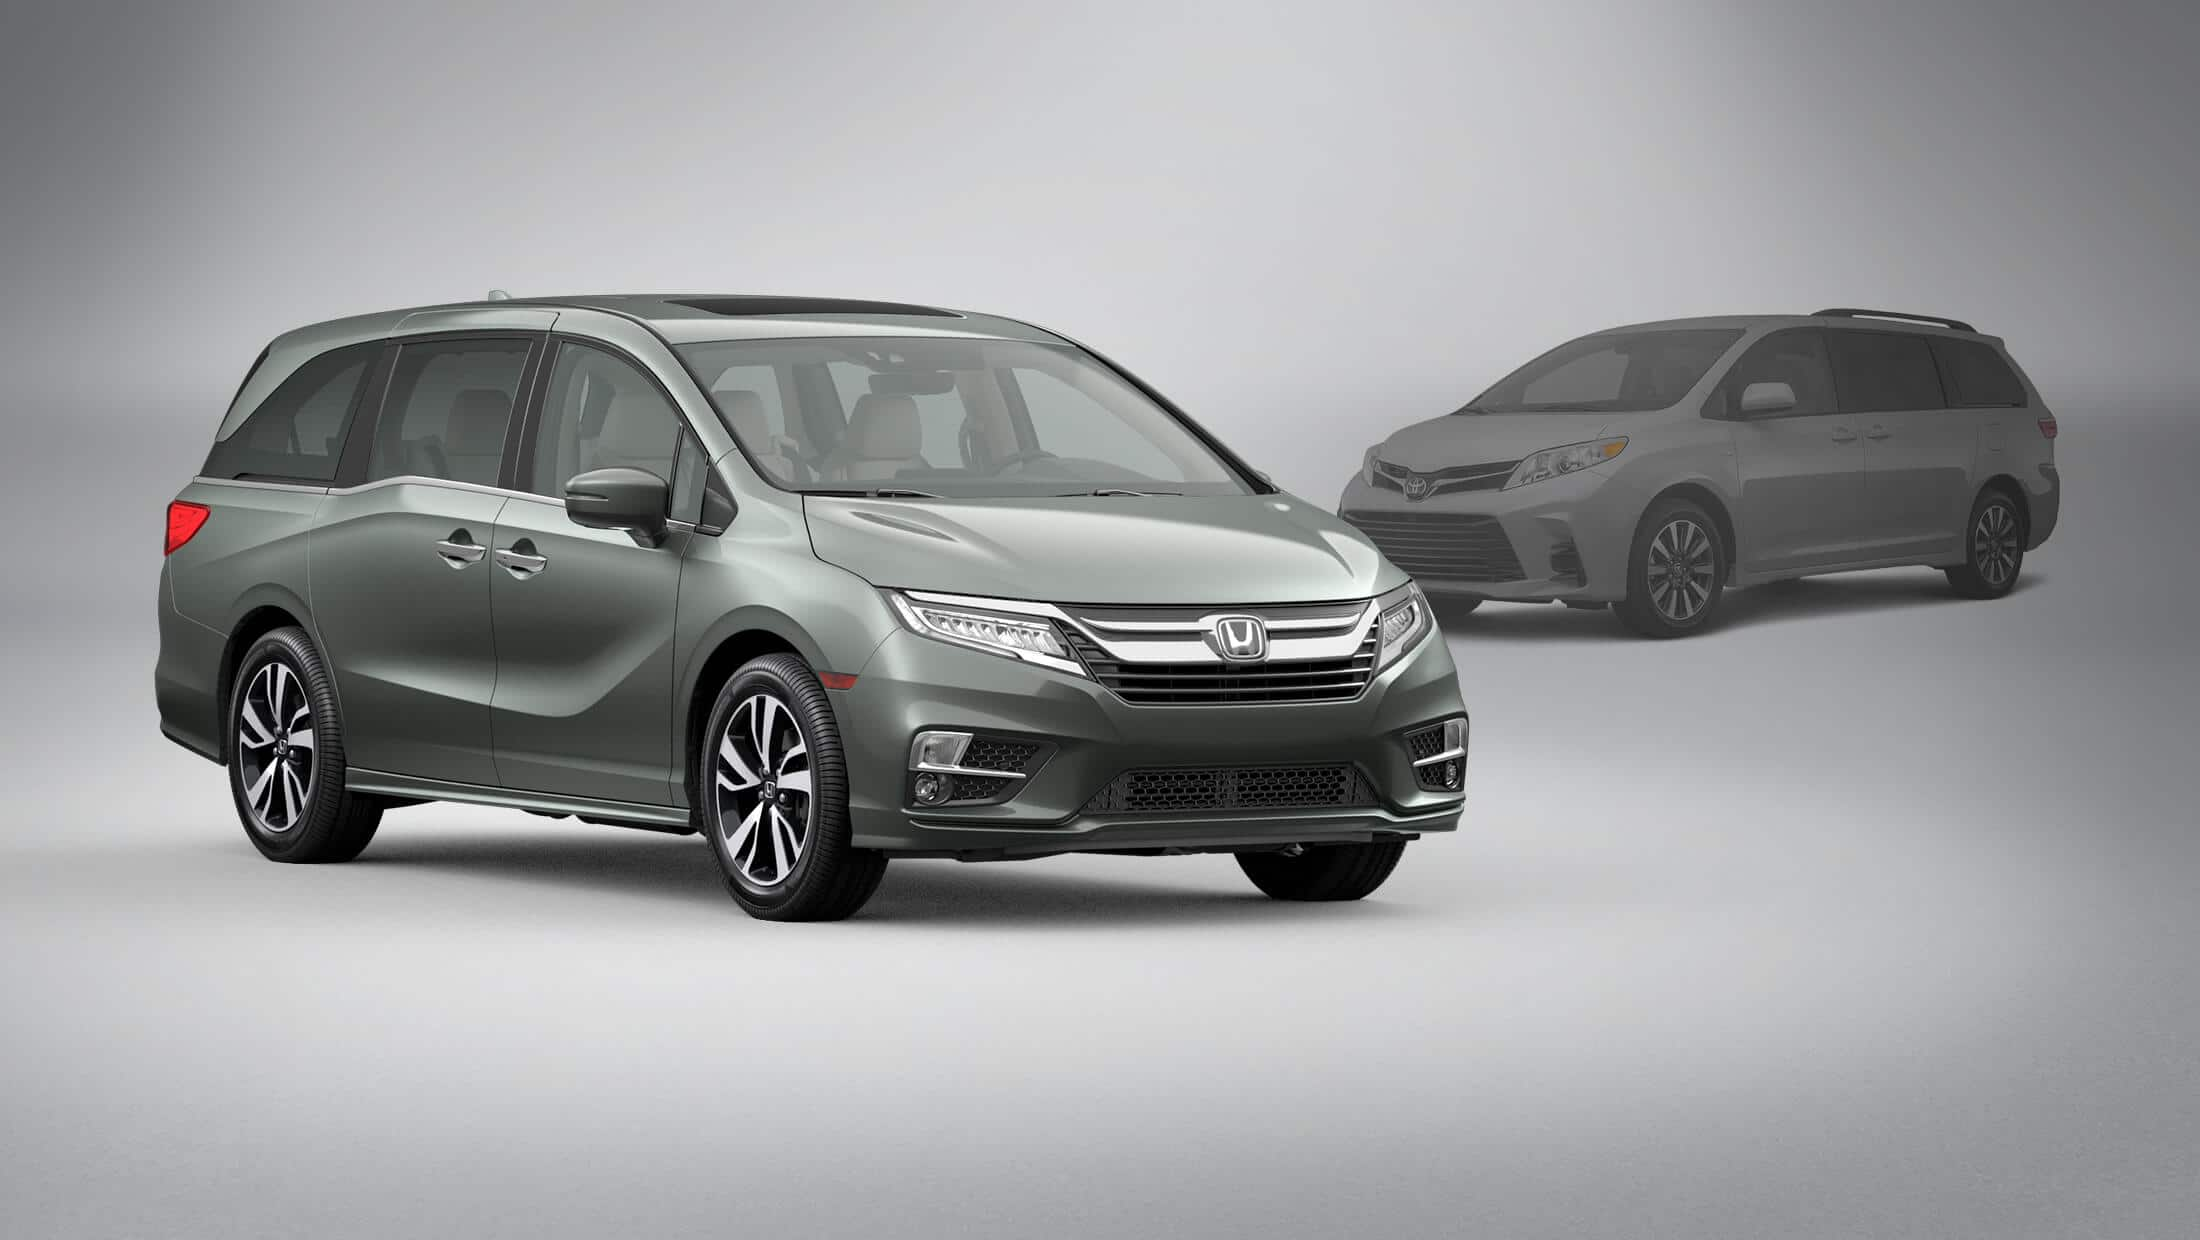 Front 3/4 passenger-side view of 2020 Honda Odyssey in Forest Mist Metallic parked in front of 2020 Toyota Sienna.